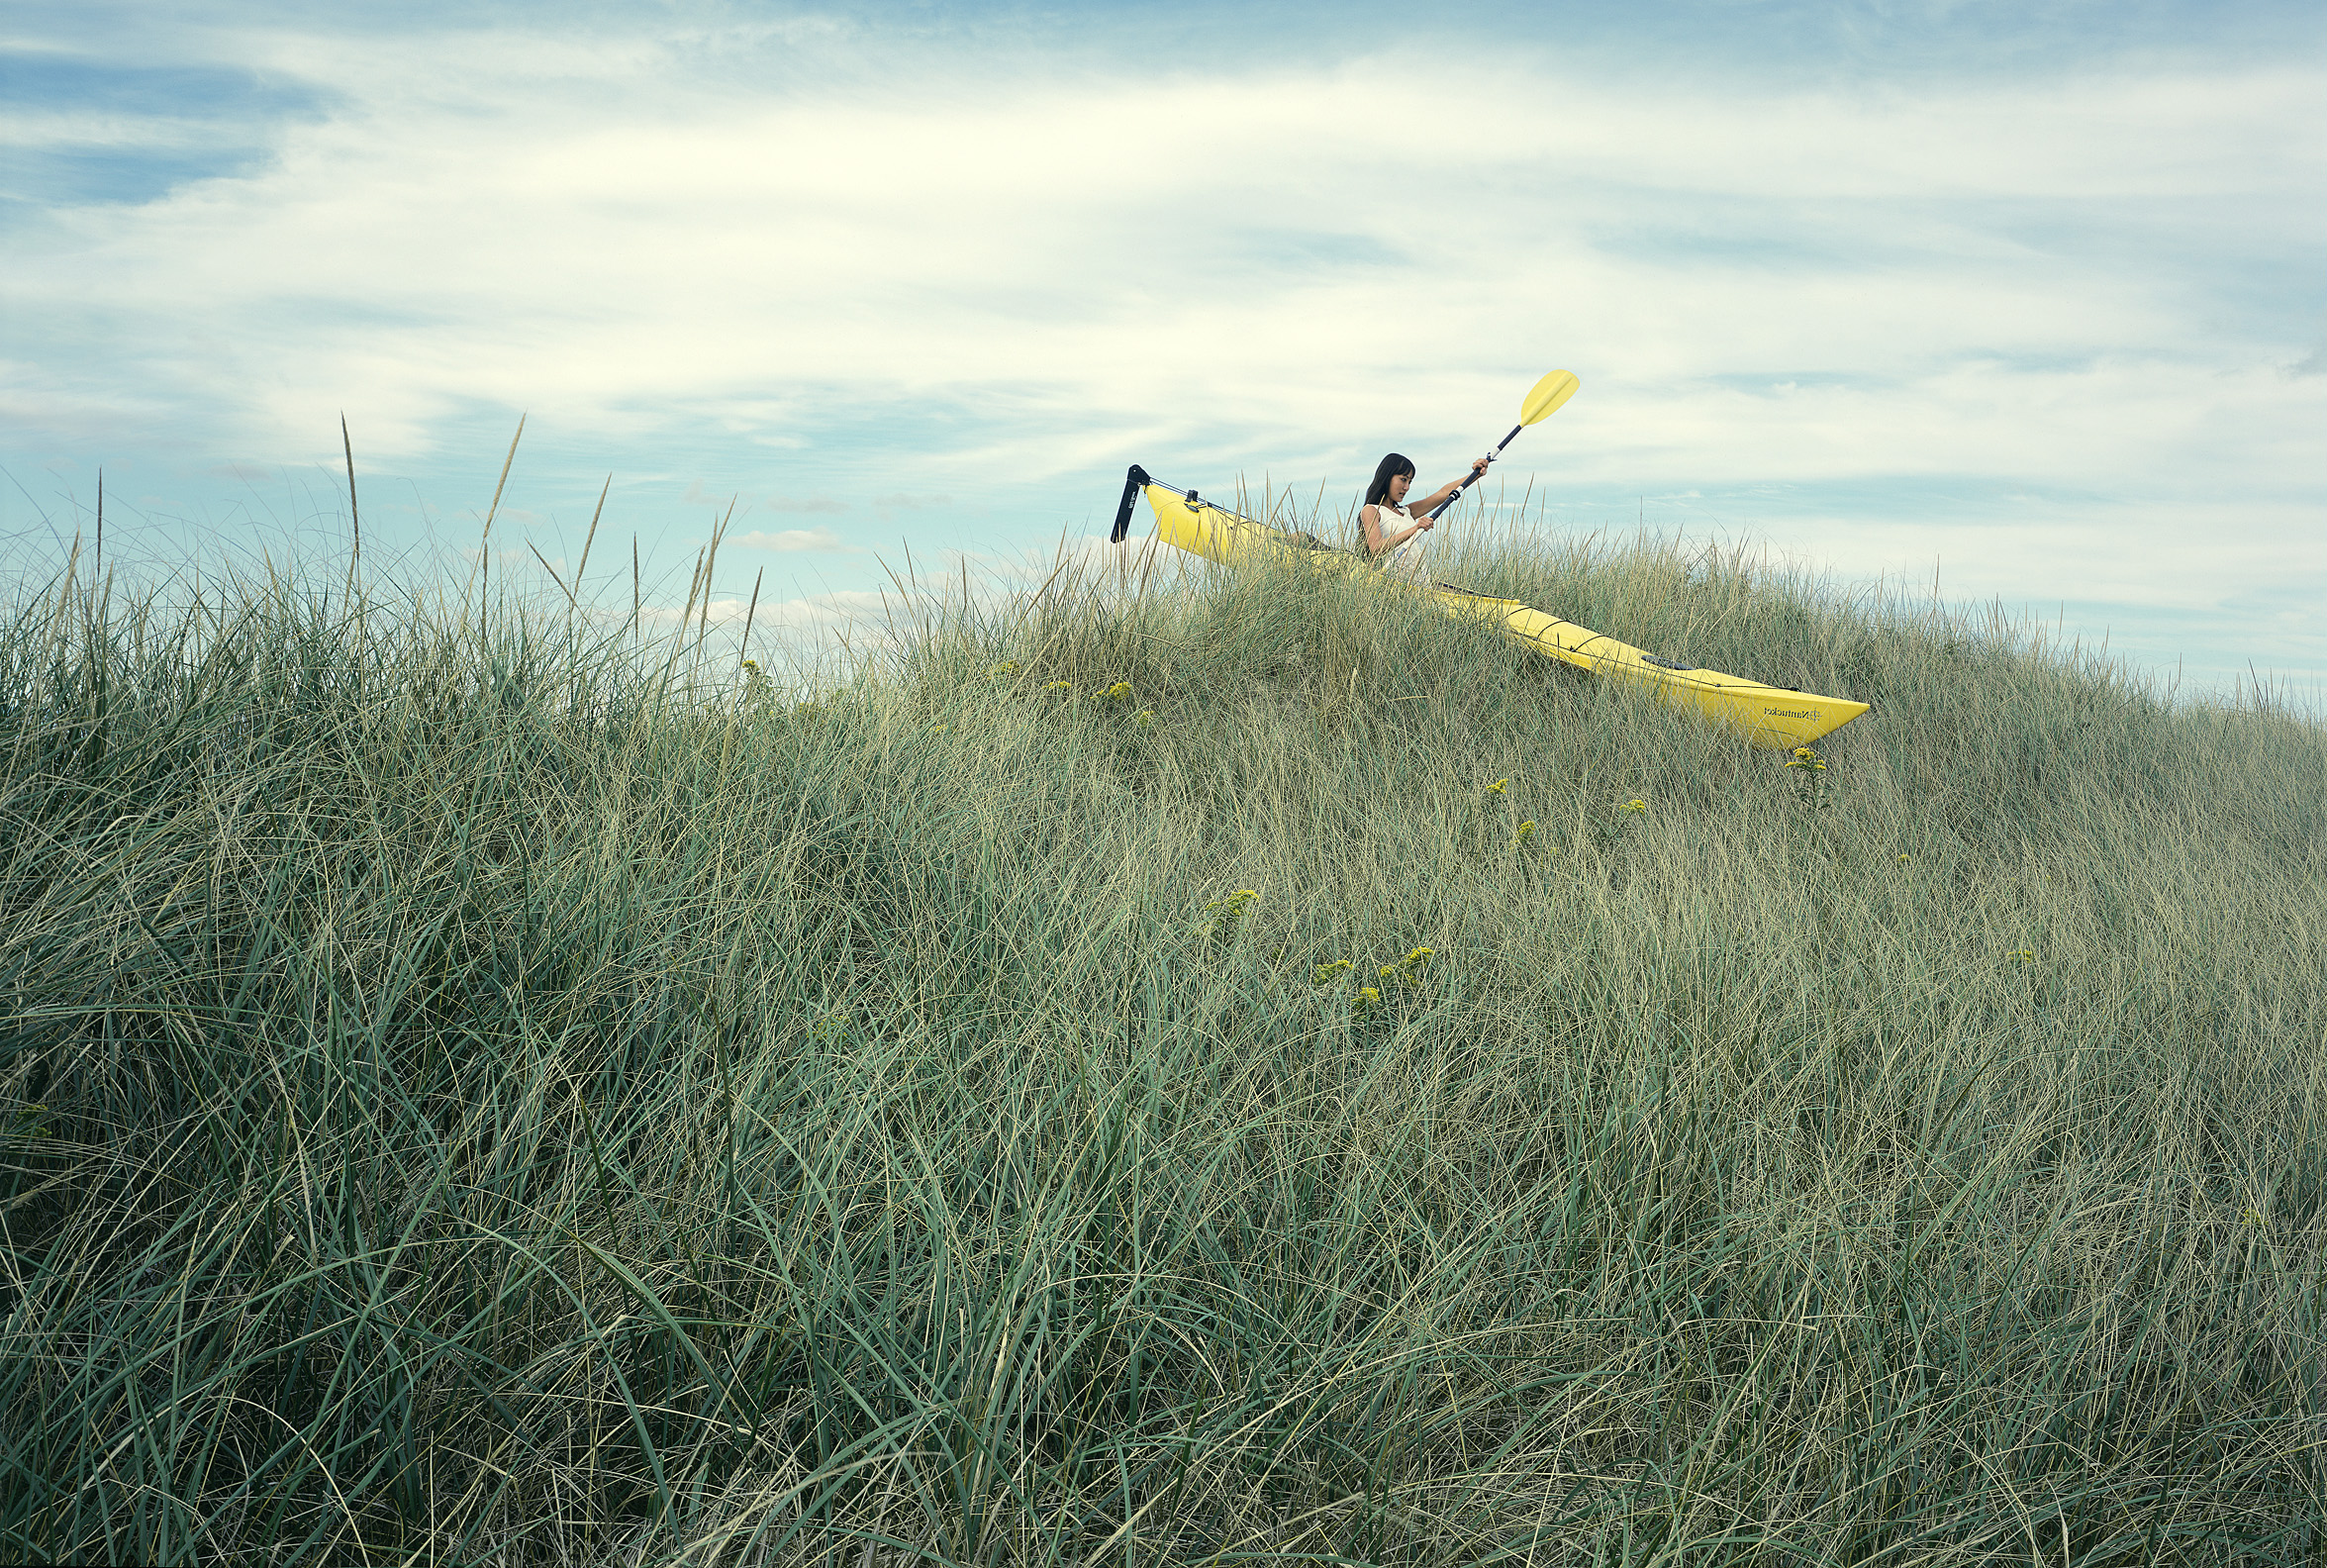 Nantucket 3 - Kayak on Grass